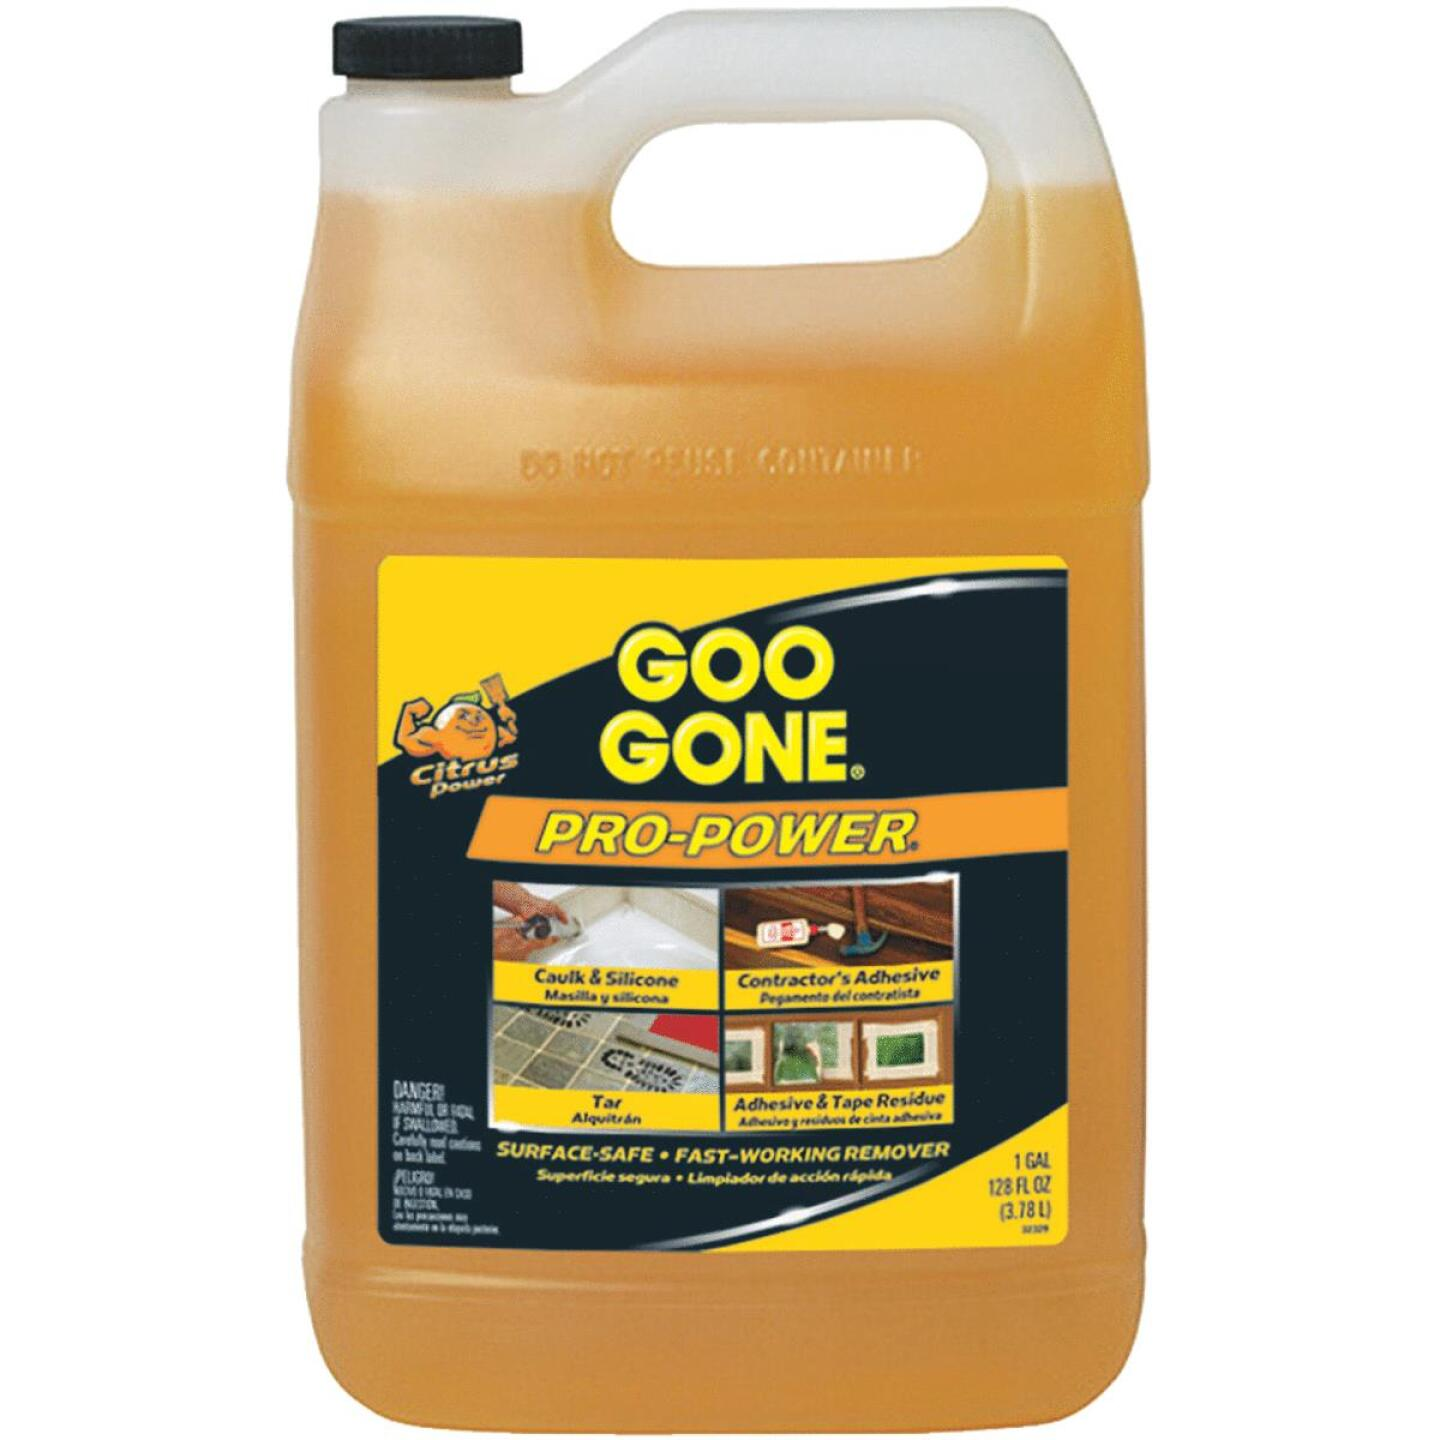 Goo Gone 1 Gal. Pro-Power Adhesive Remover Image 169